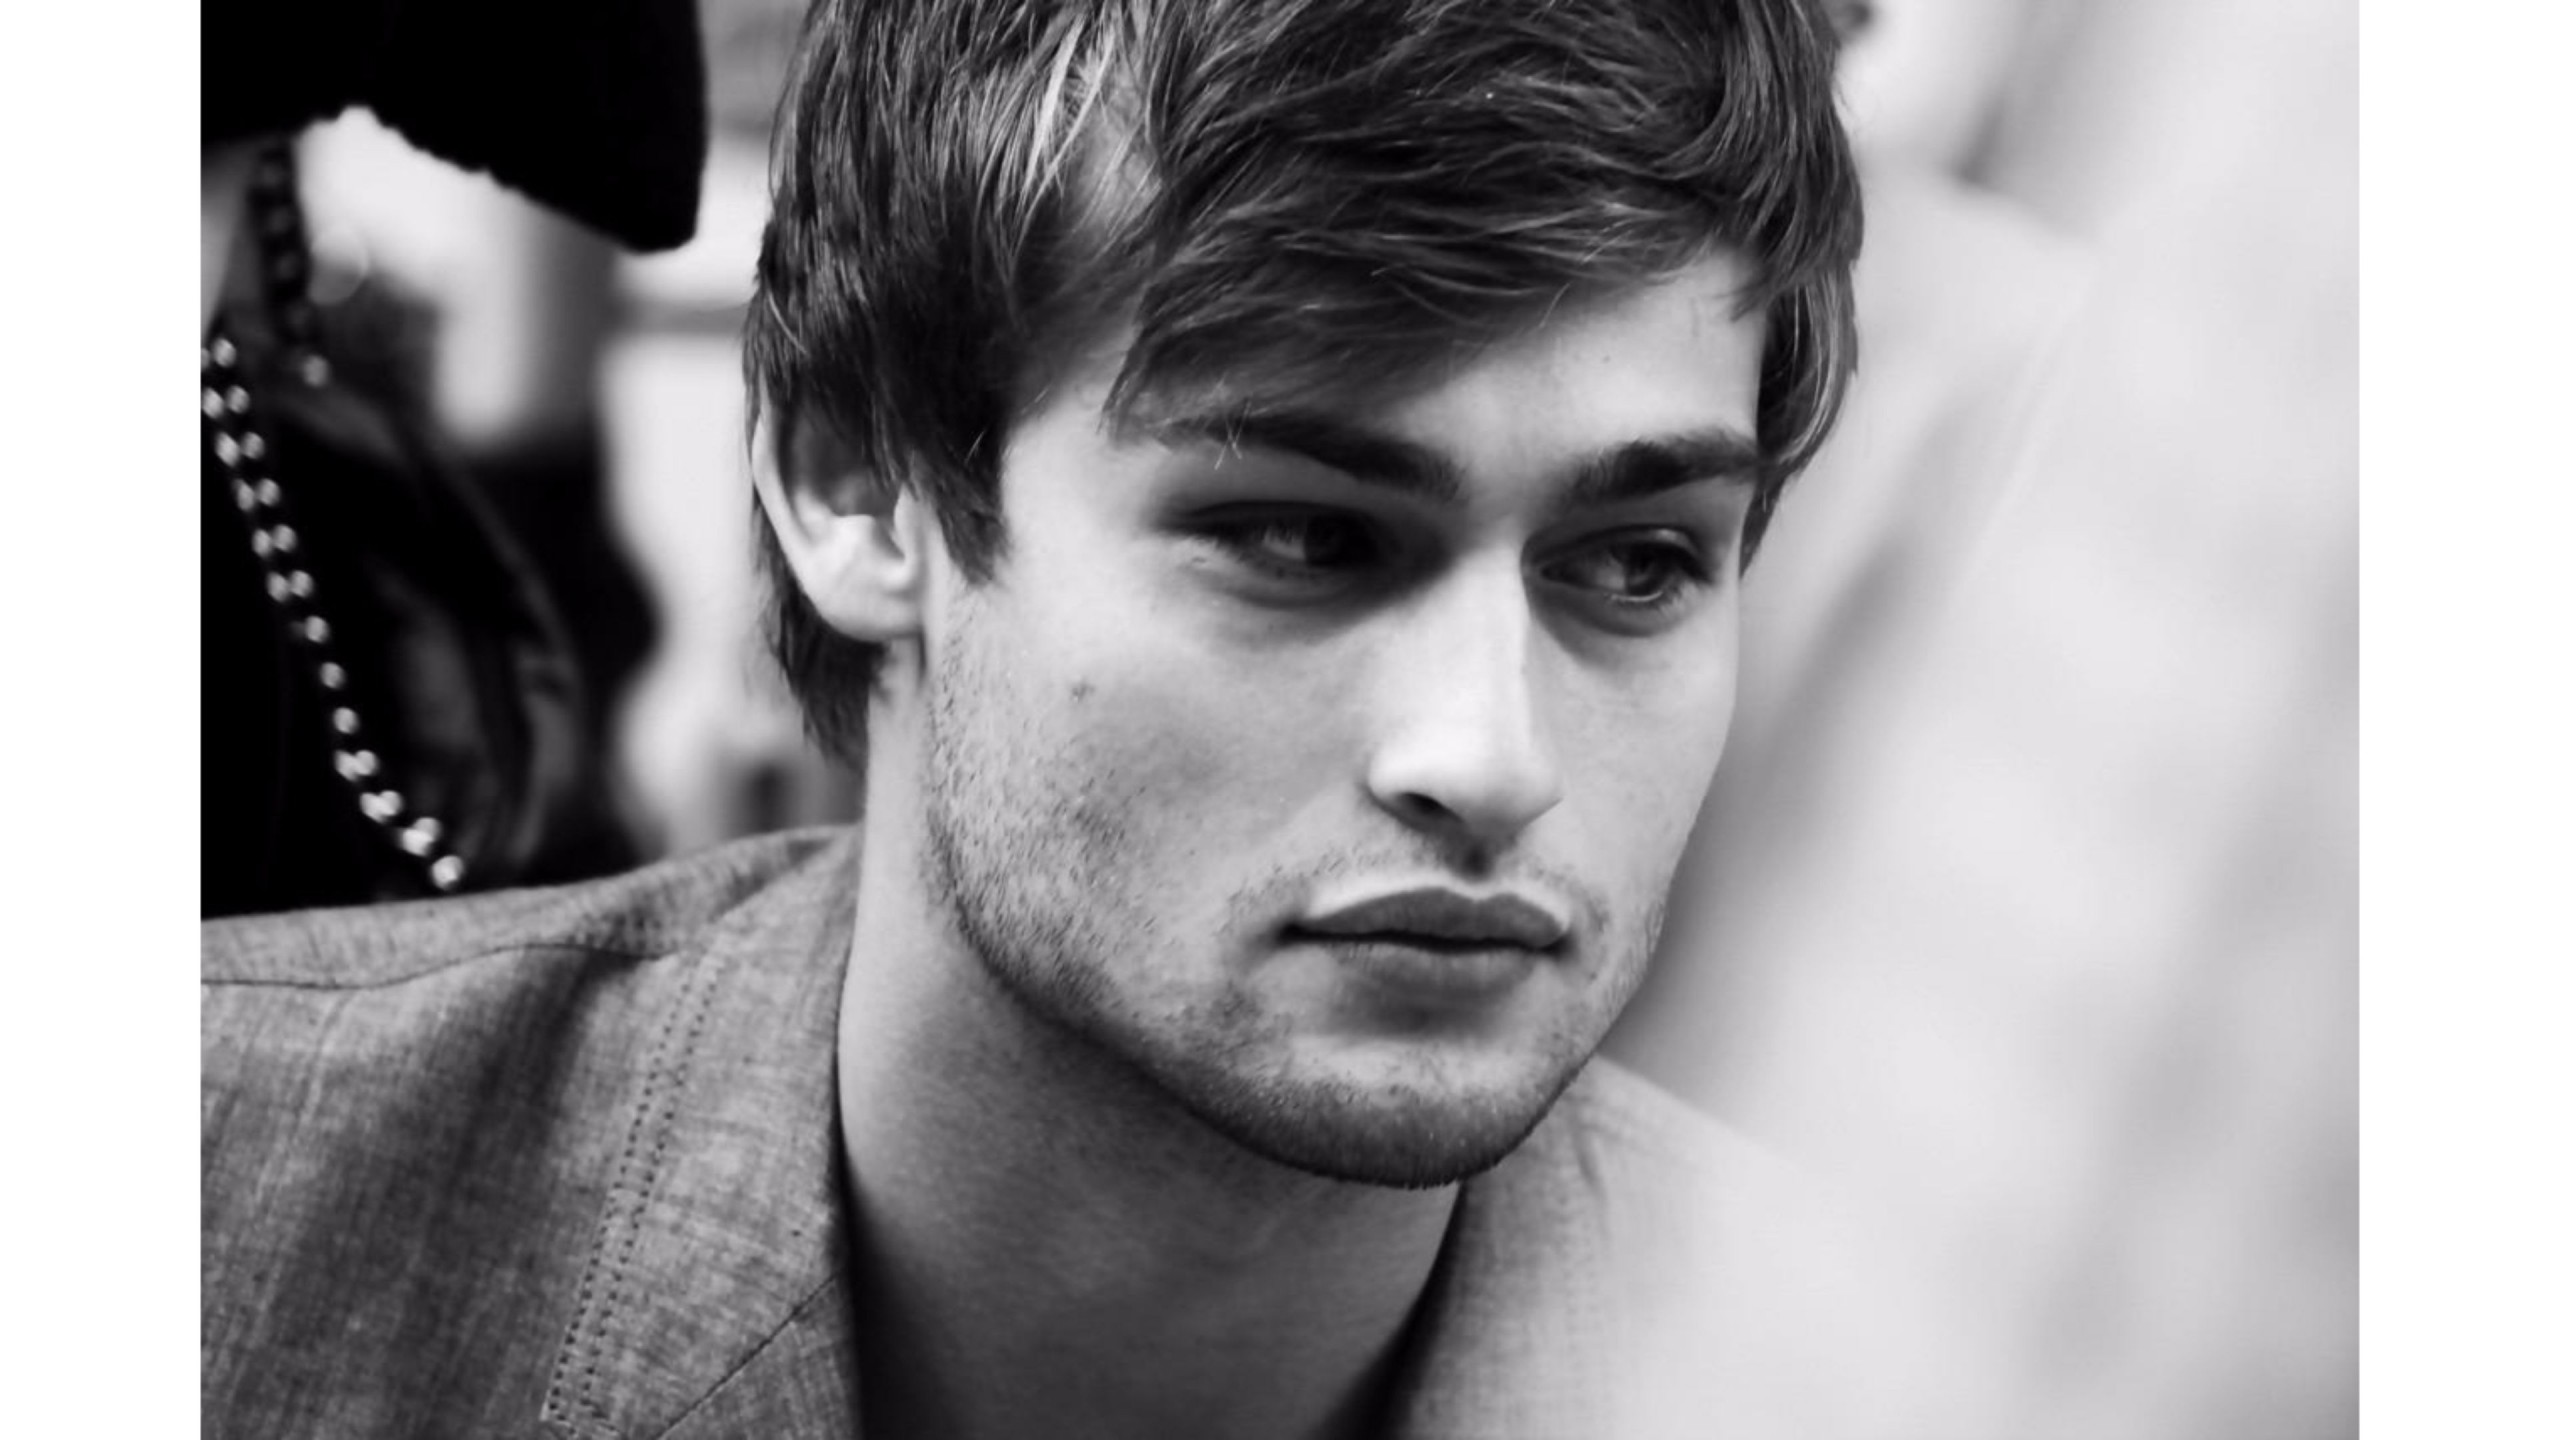 Salman Hd Wallpaper Douglas Booth Hd Wallpapers